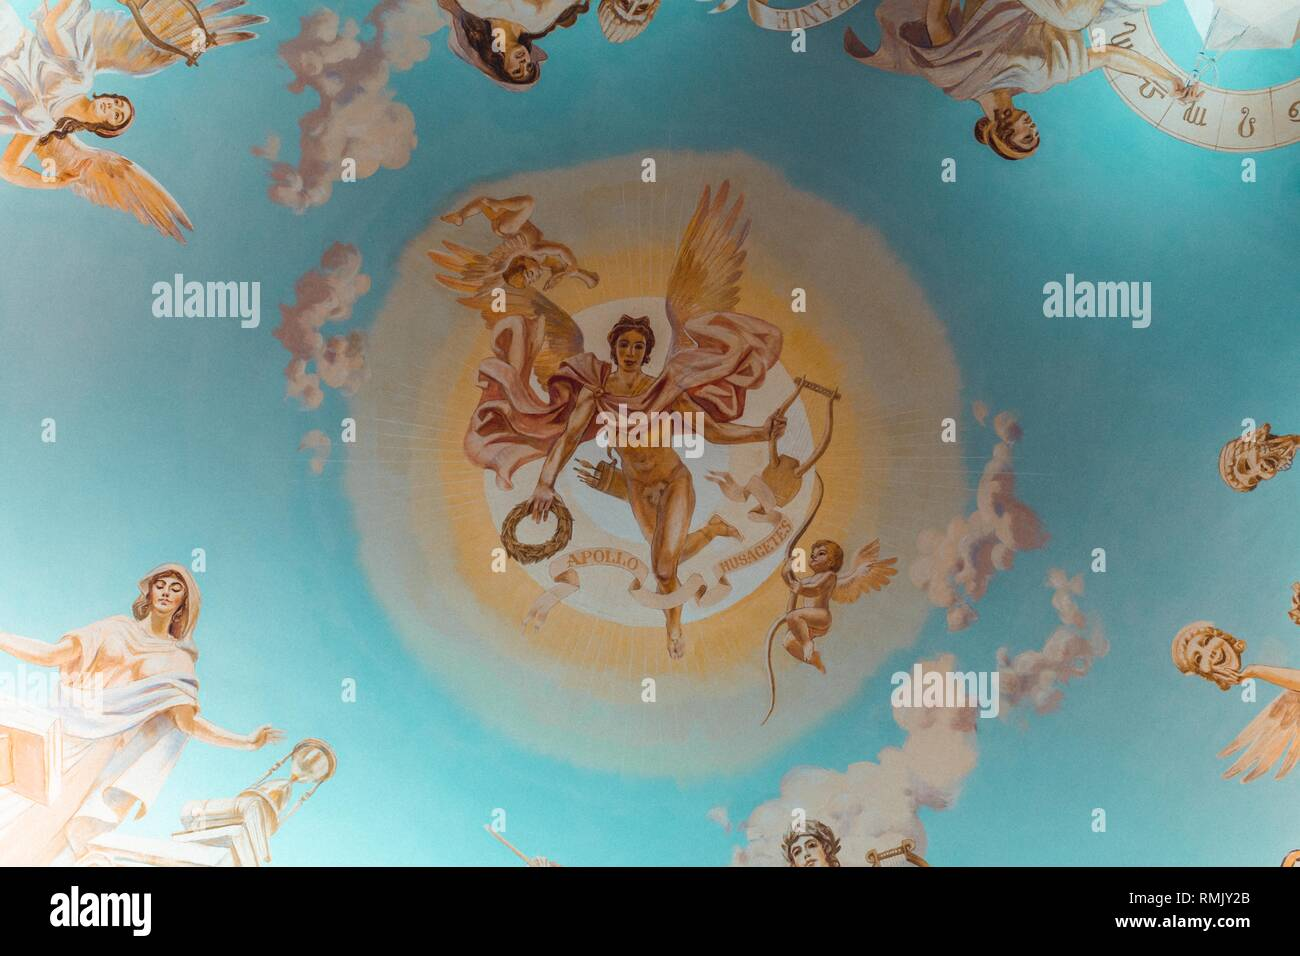 Beautiful artistic religious imagery painting - Stock Image